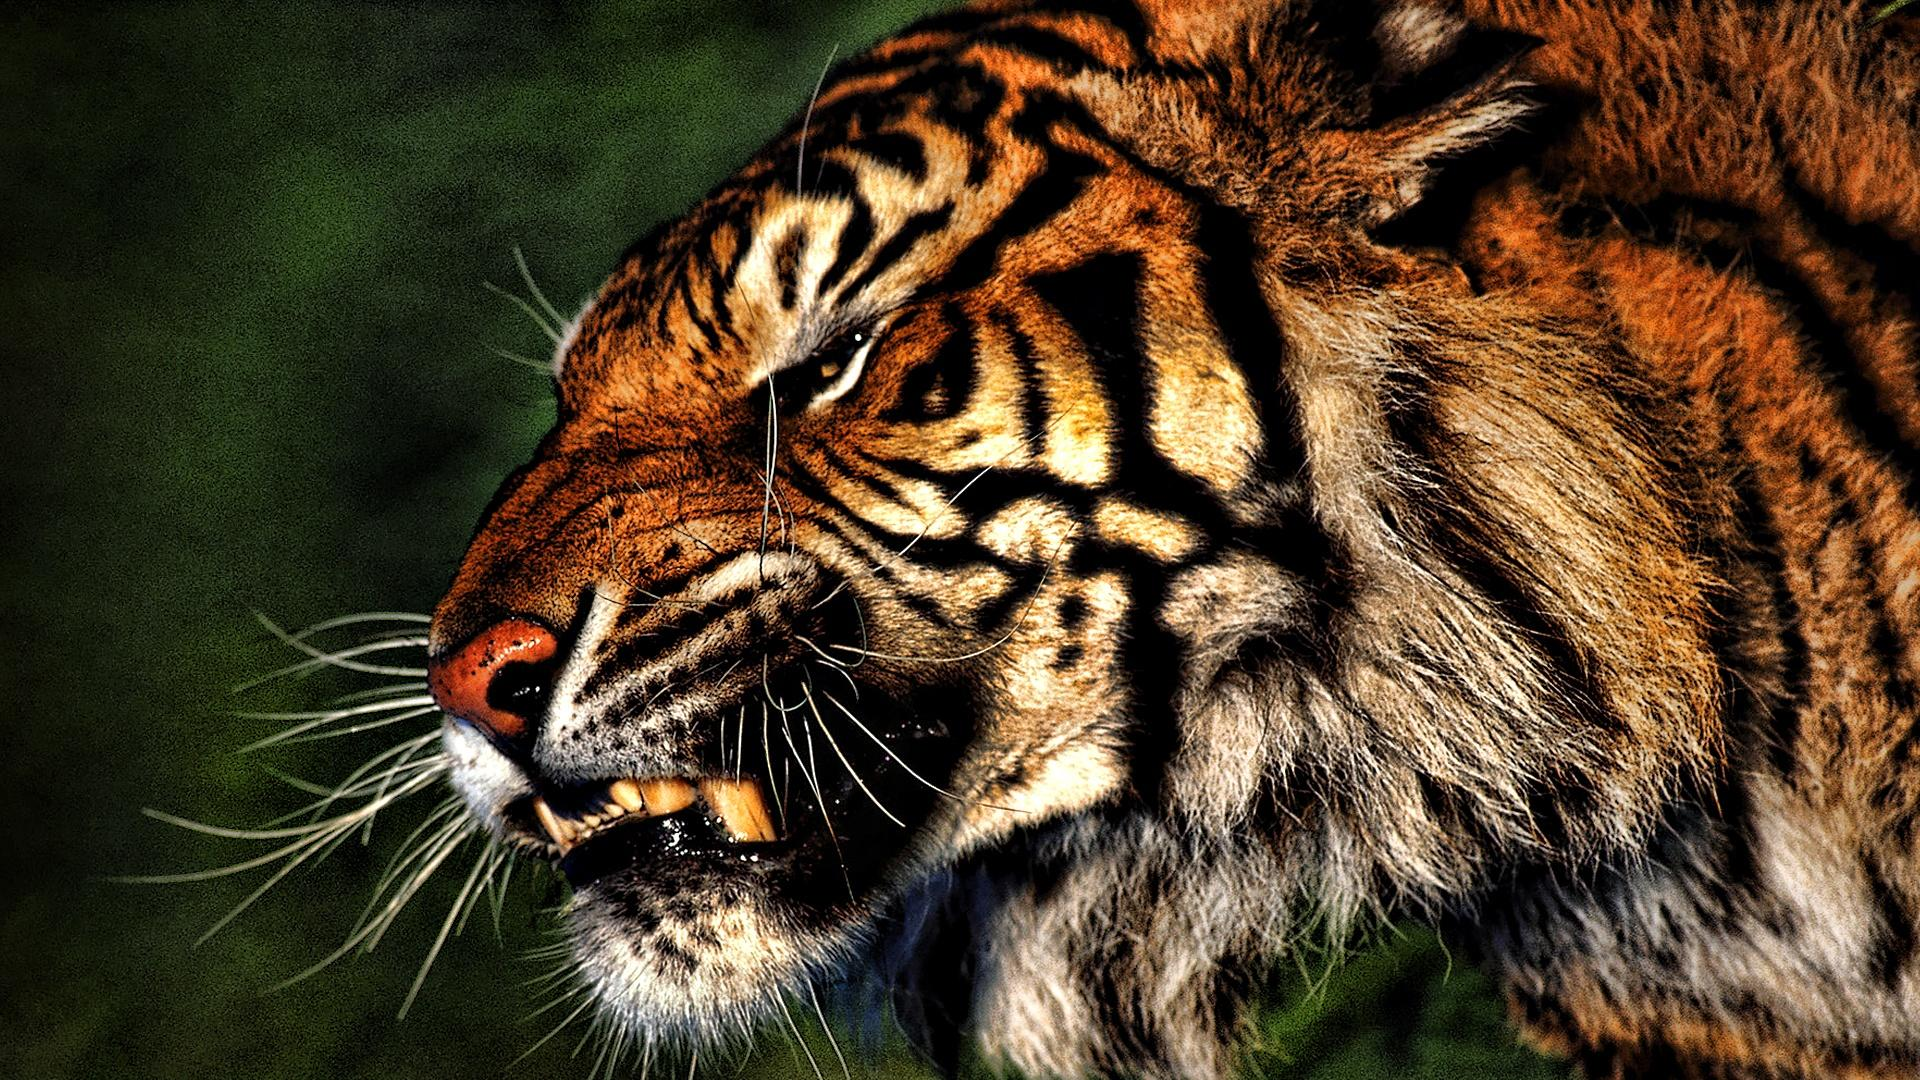 angry animals wallpapers - photo #10